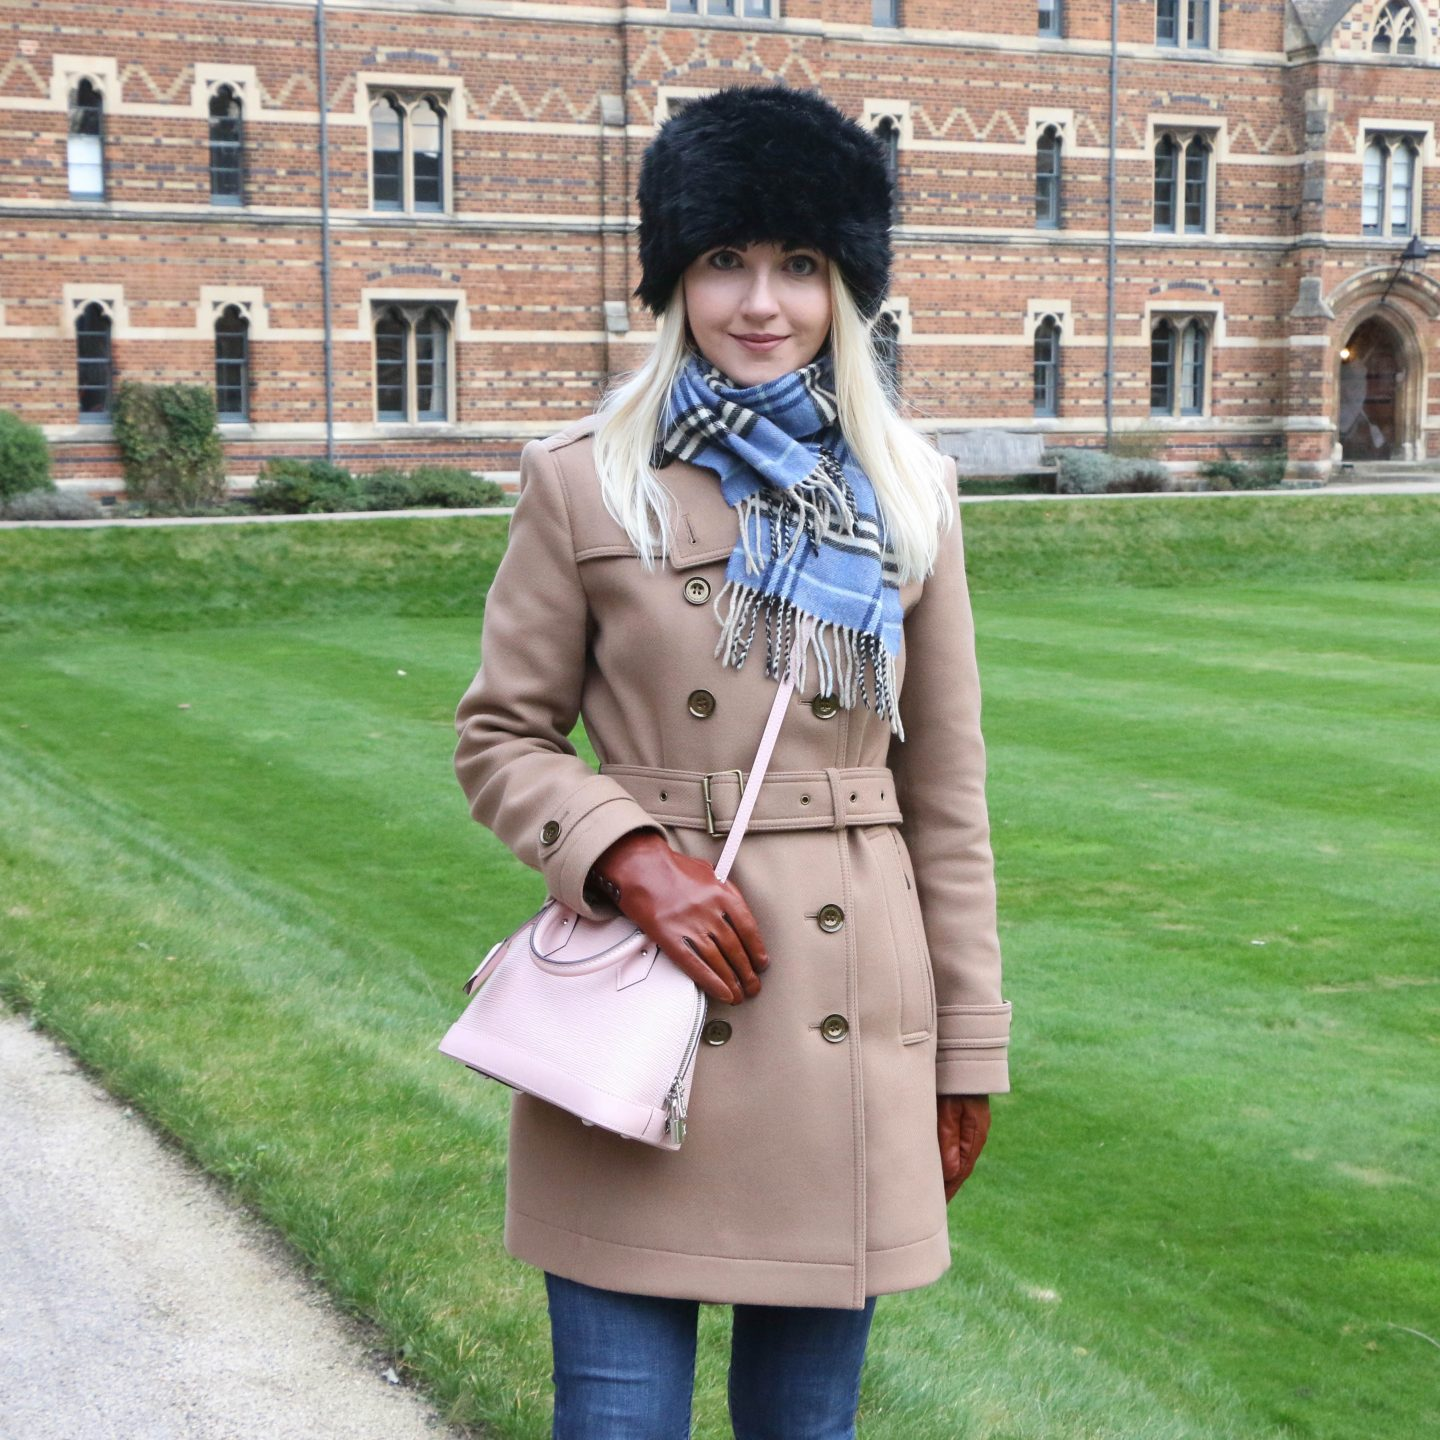 fashion blogger outfit post at keble college oxford